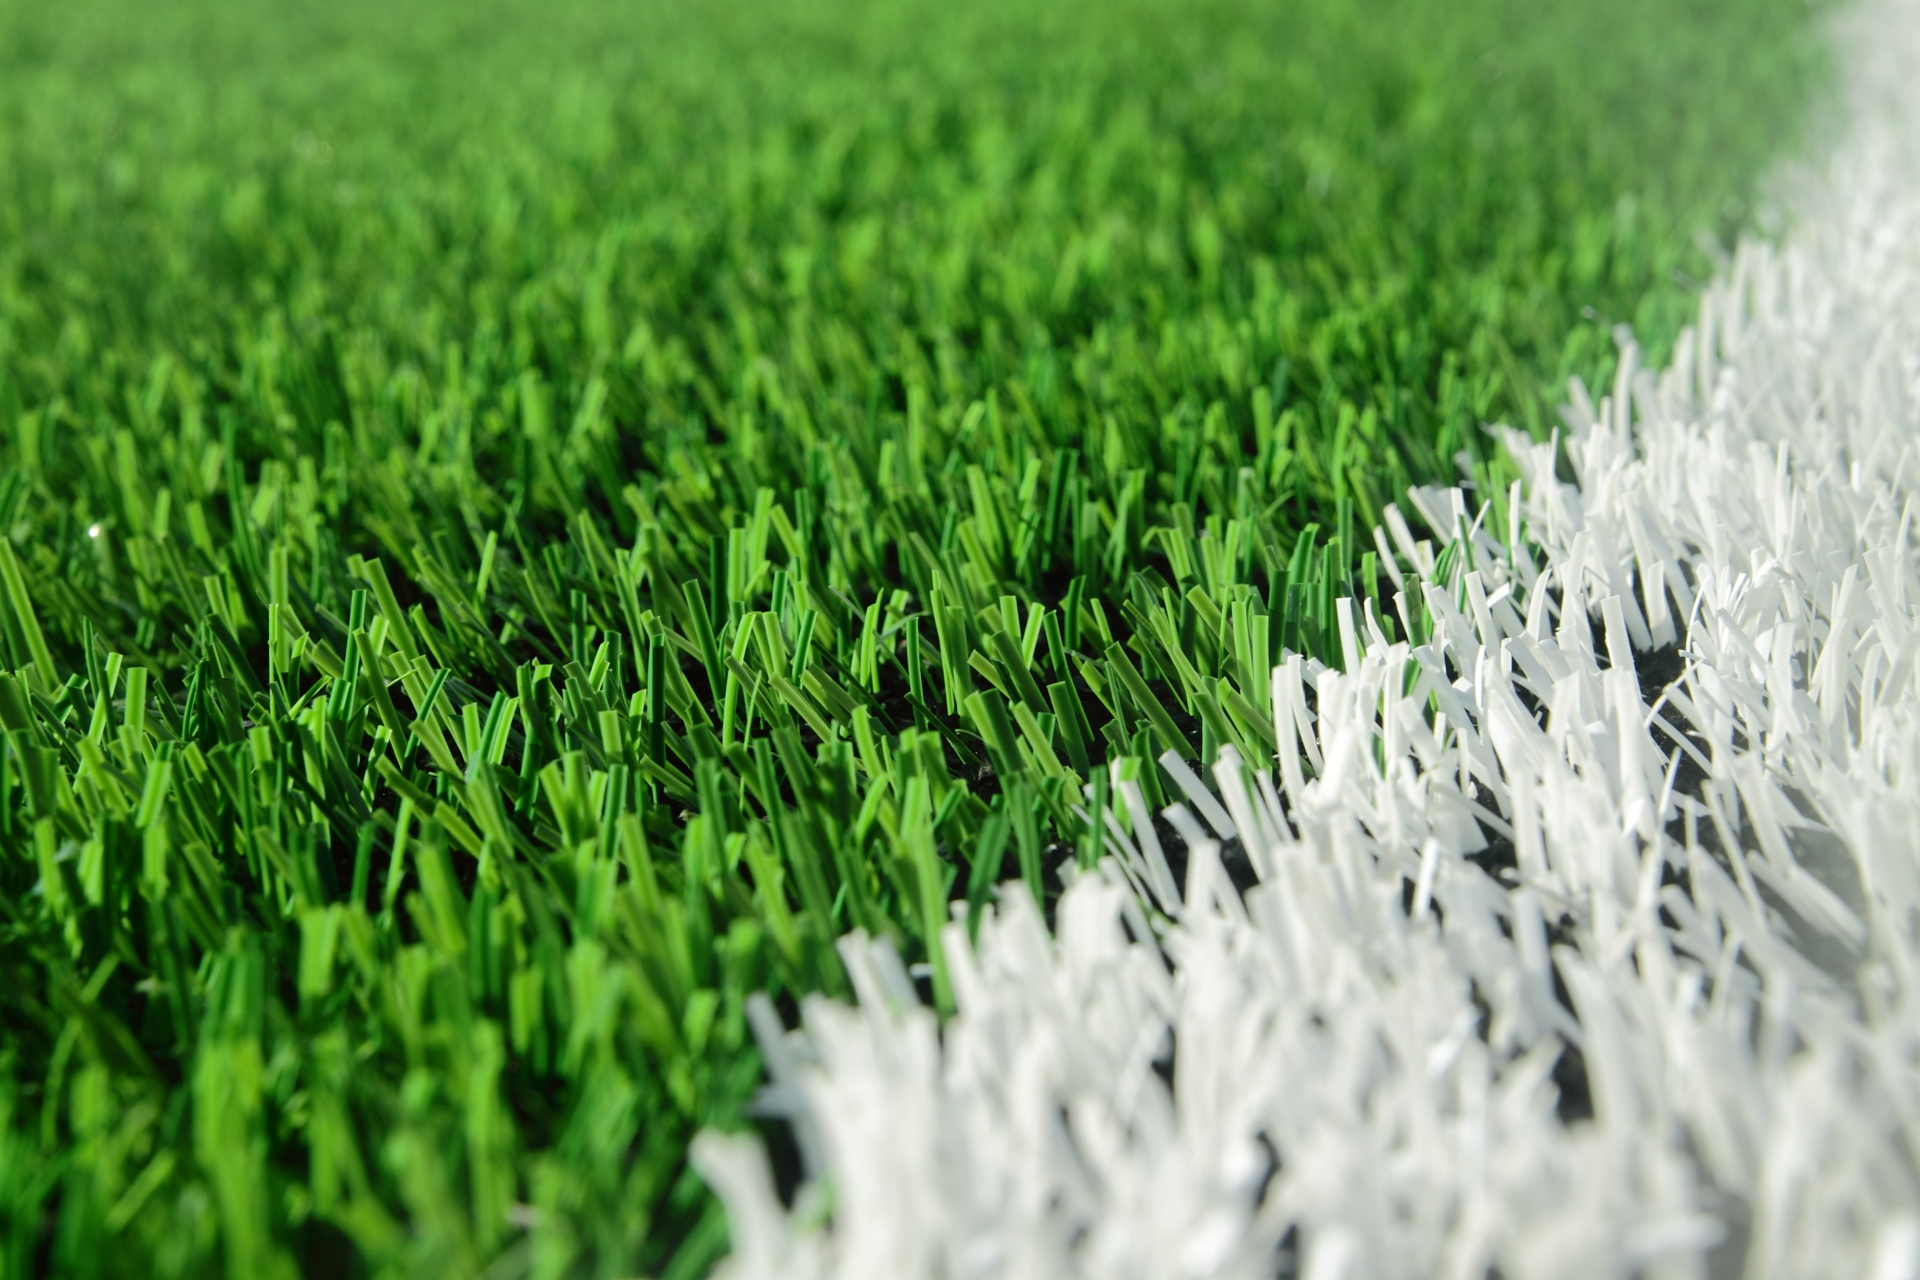 SUPERB 3G ASTROTURF PITCHES